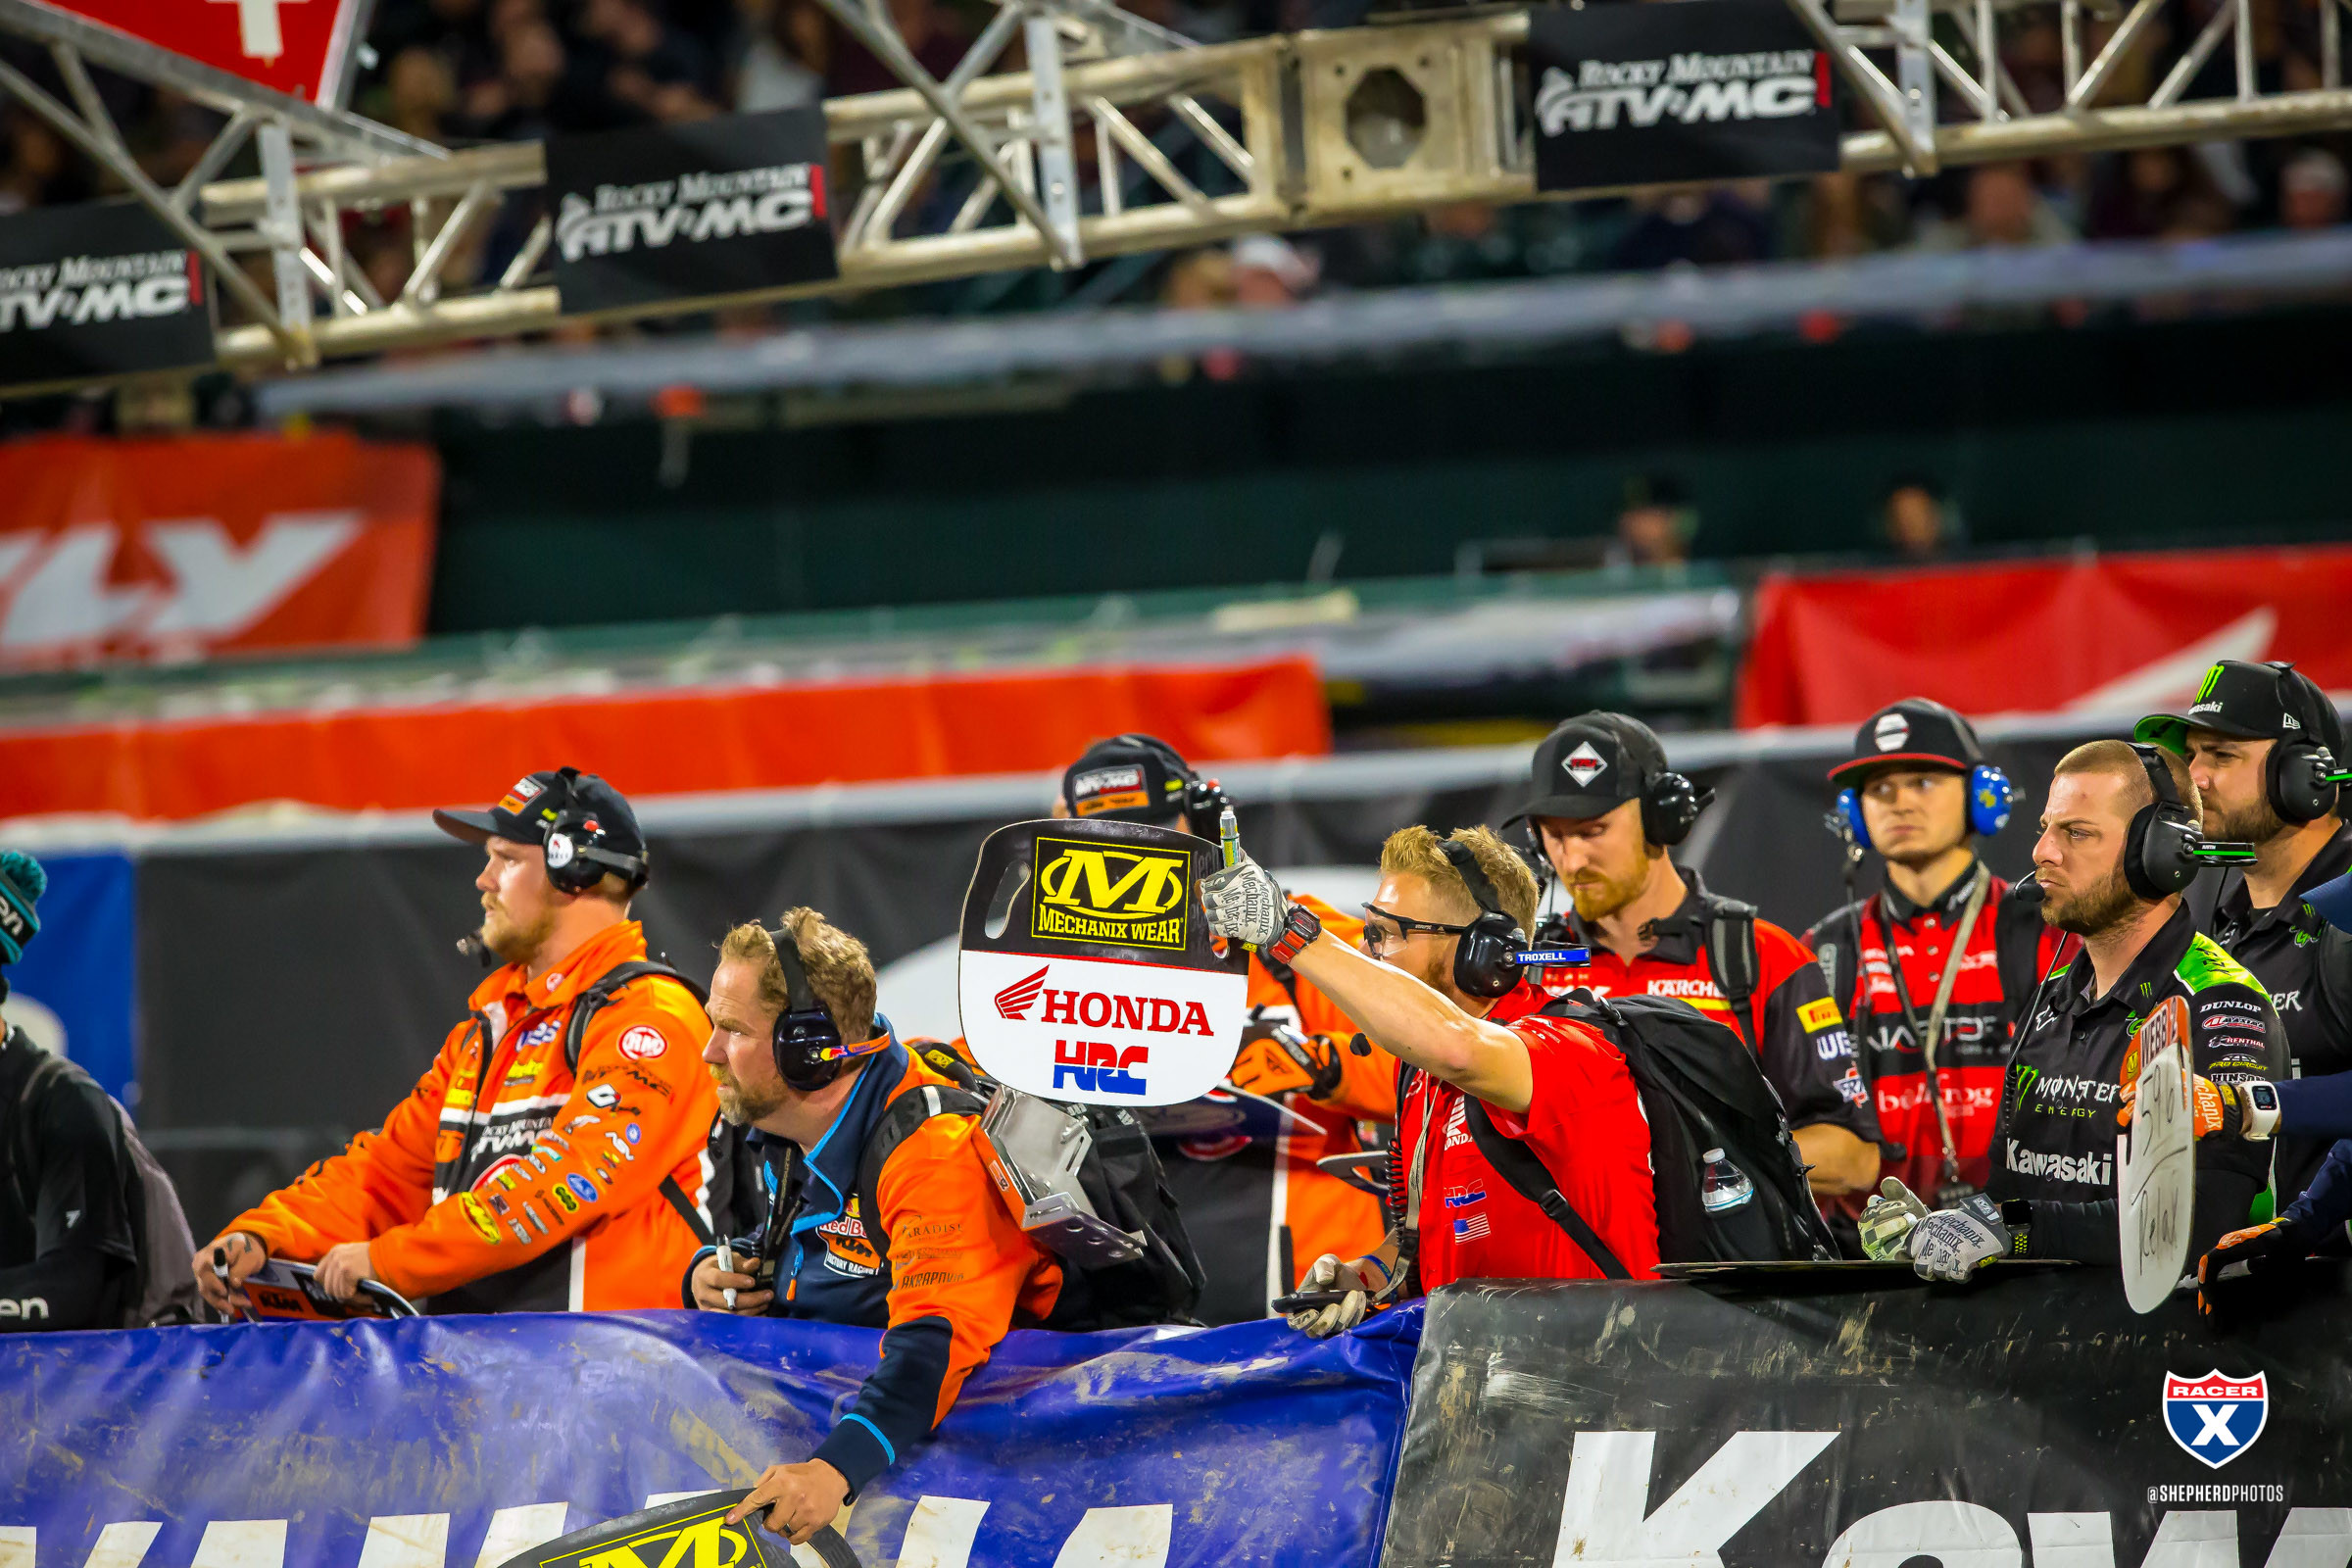 MechanixWear_RS_SX19_Anaheim2_021